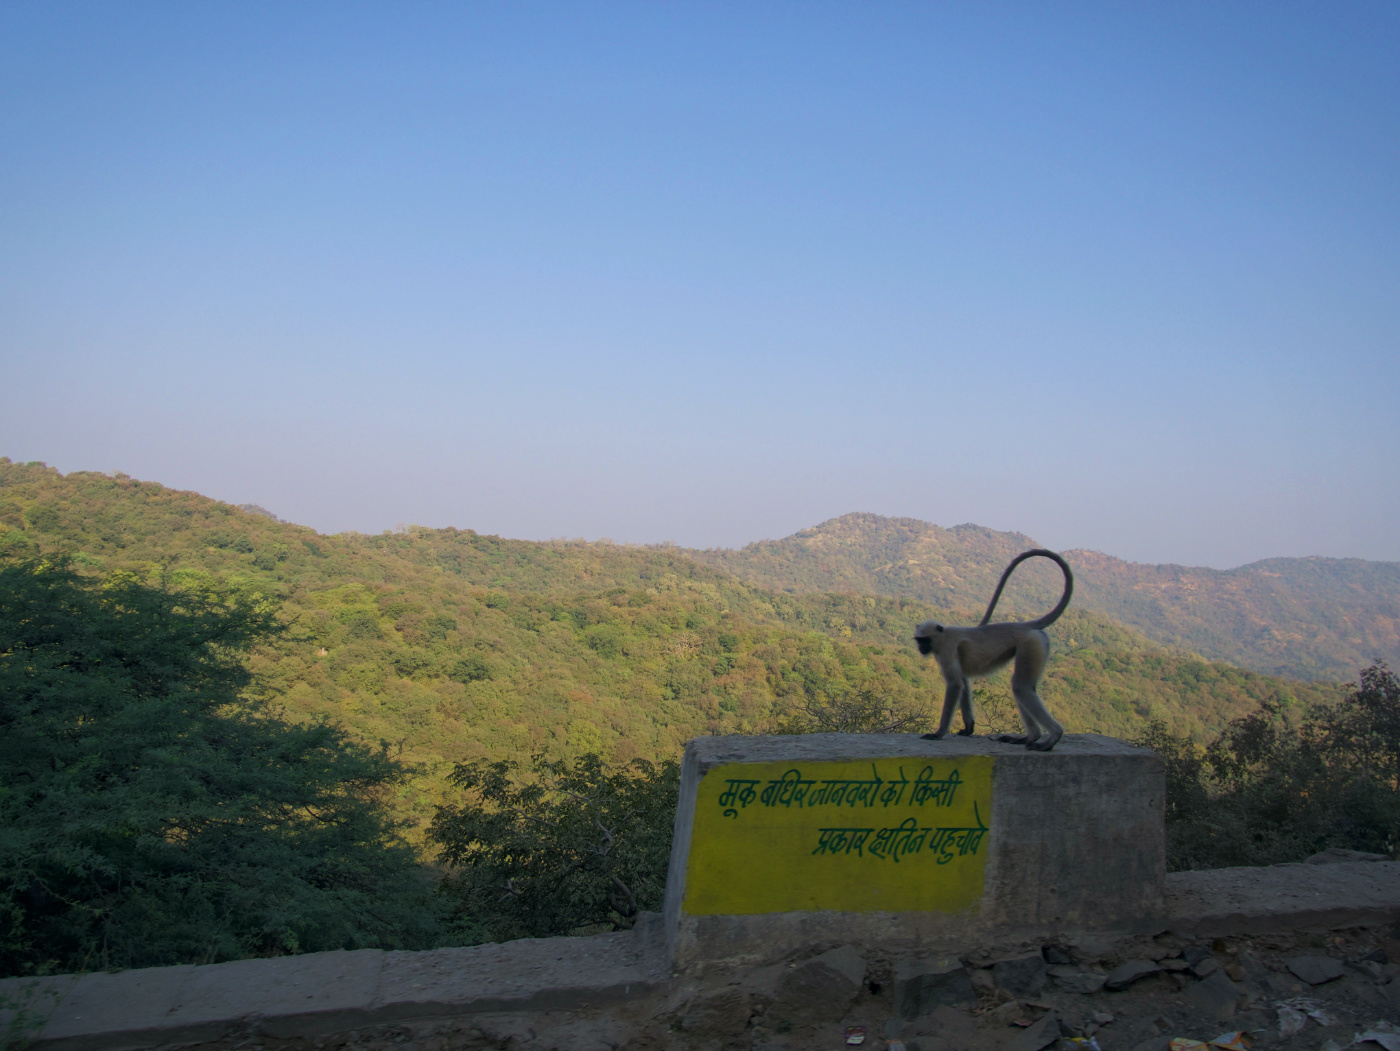 675-India-ontheroad